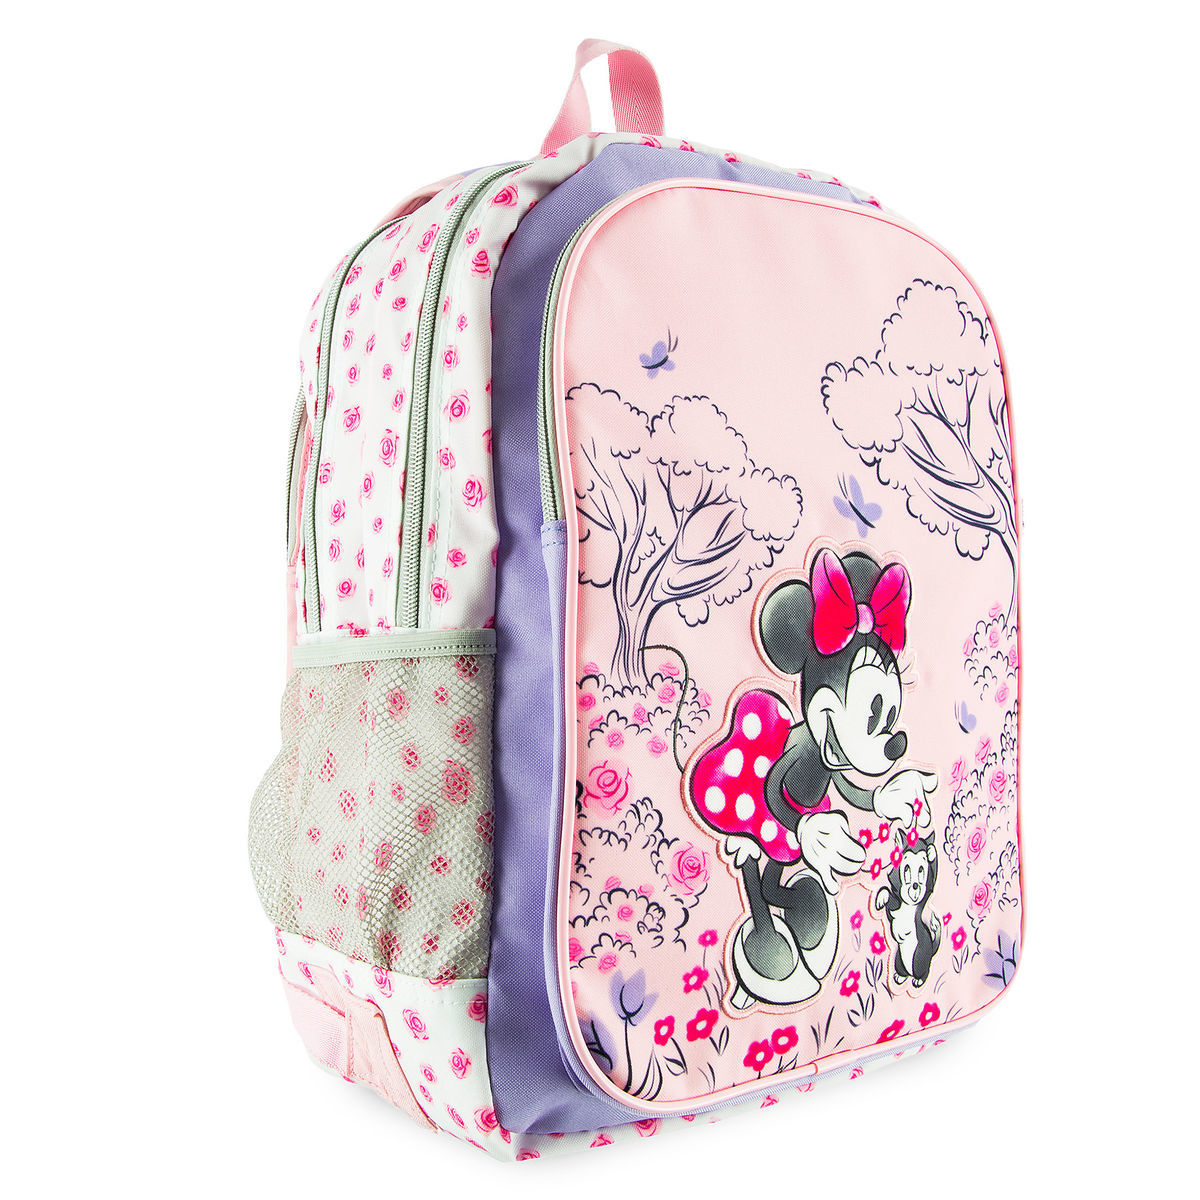 Product Image of Minnie Mouse and Figaro Reversible Backpack   1 70e0c6b4cb11c